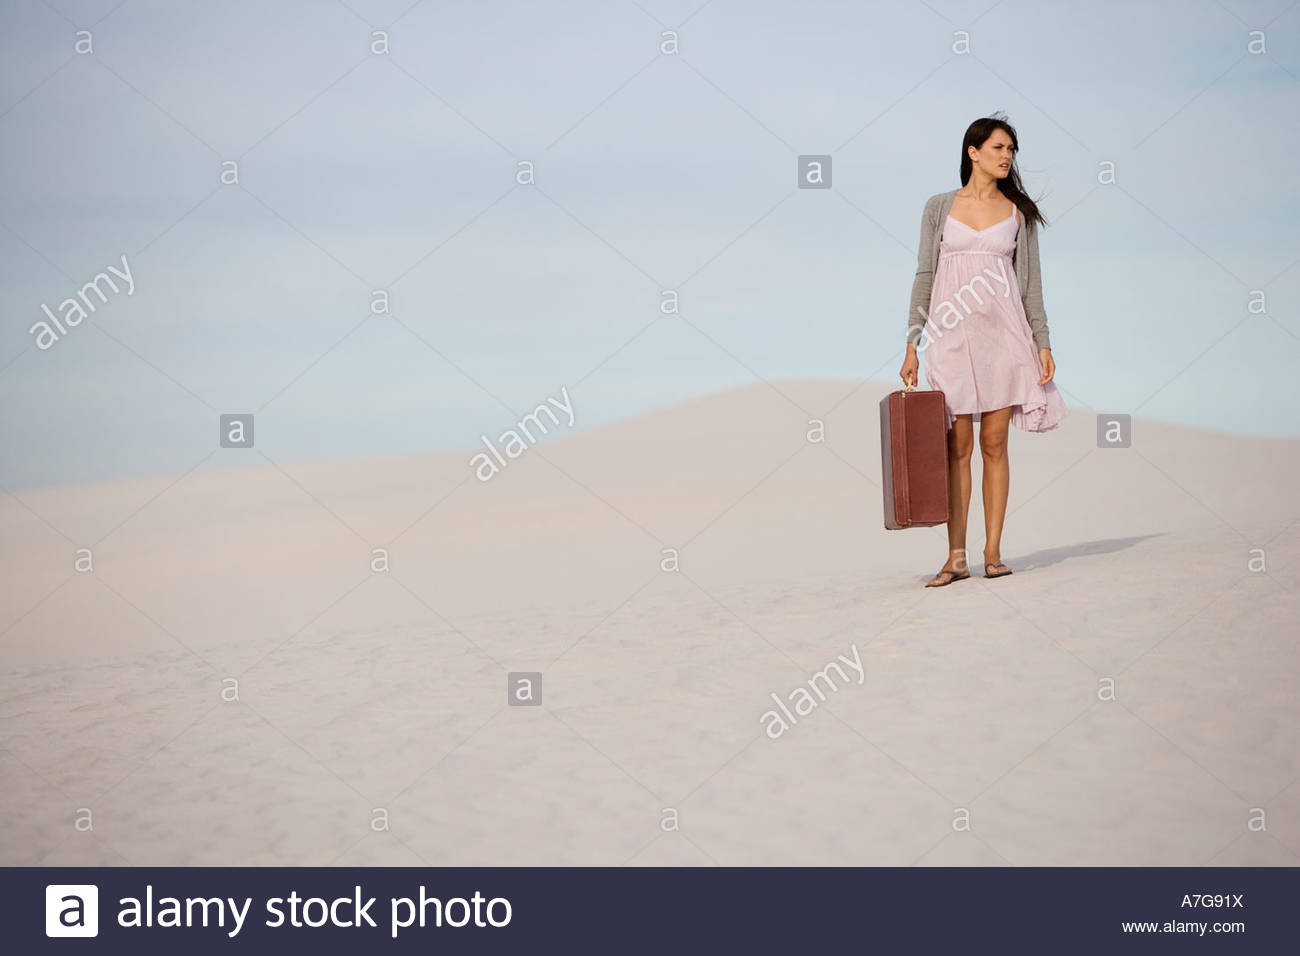 A young woman walking in the desert carrying a suitcase - Stock Image